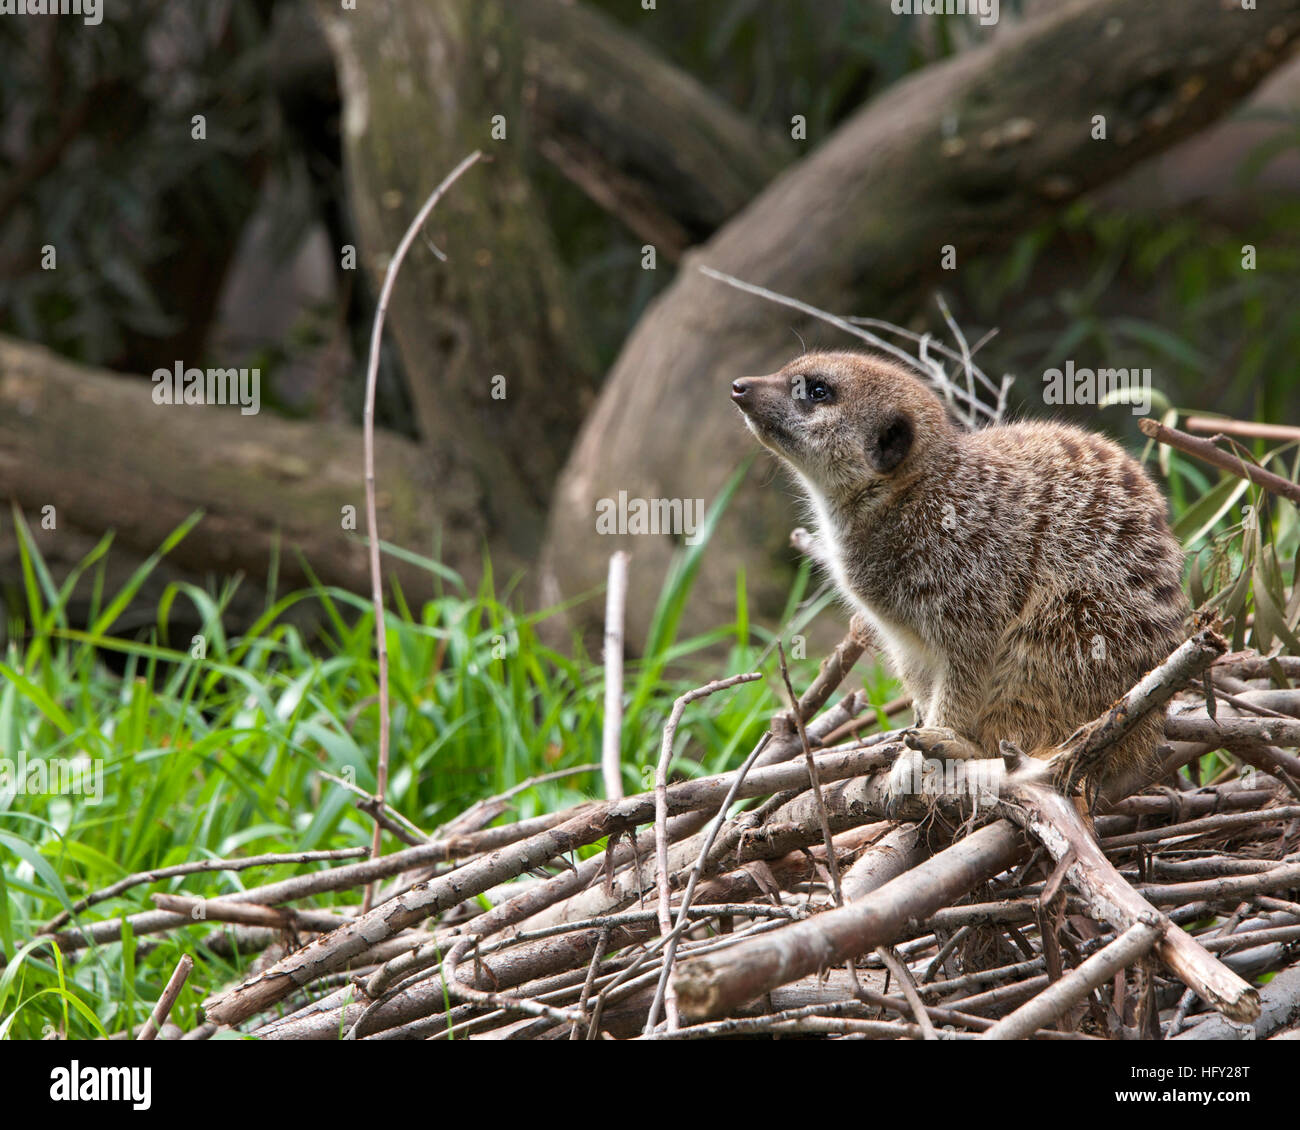 Side view of single meerkat crouched down on a pile of branches, looking for predators in the distance. - Stock Image